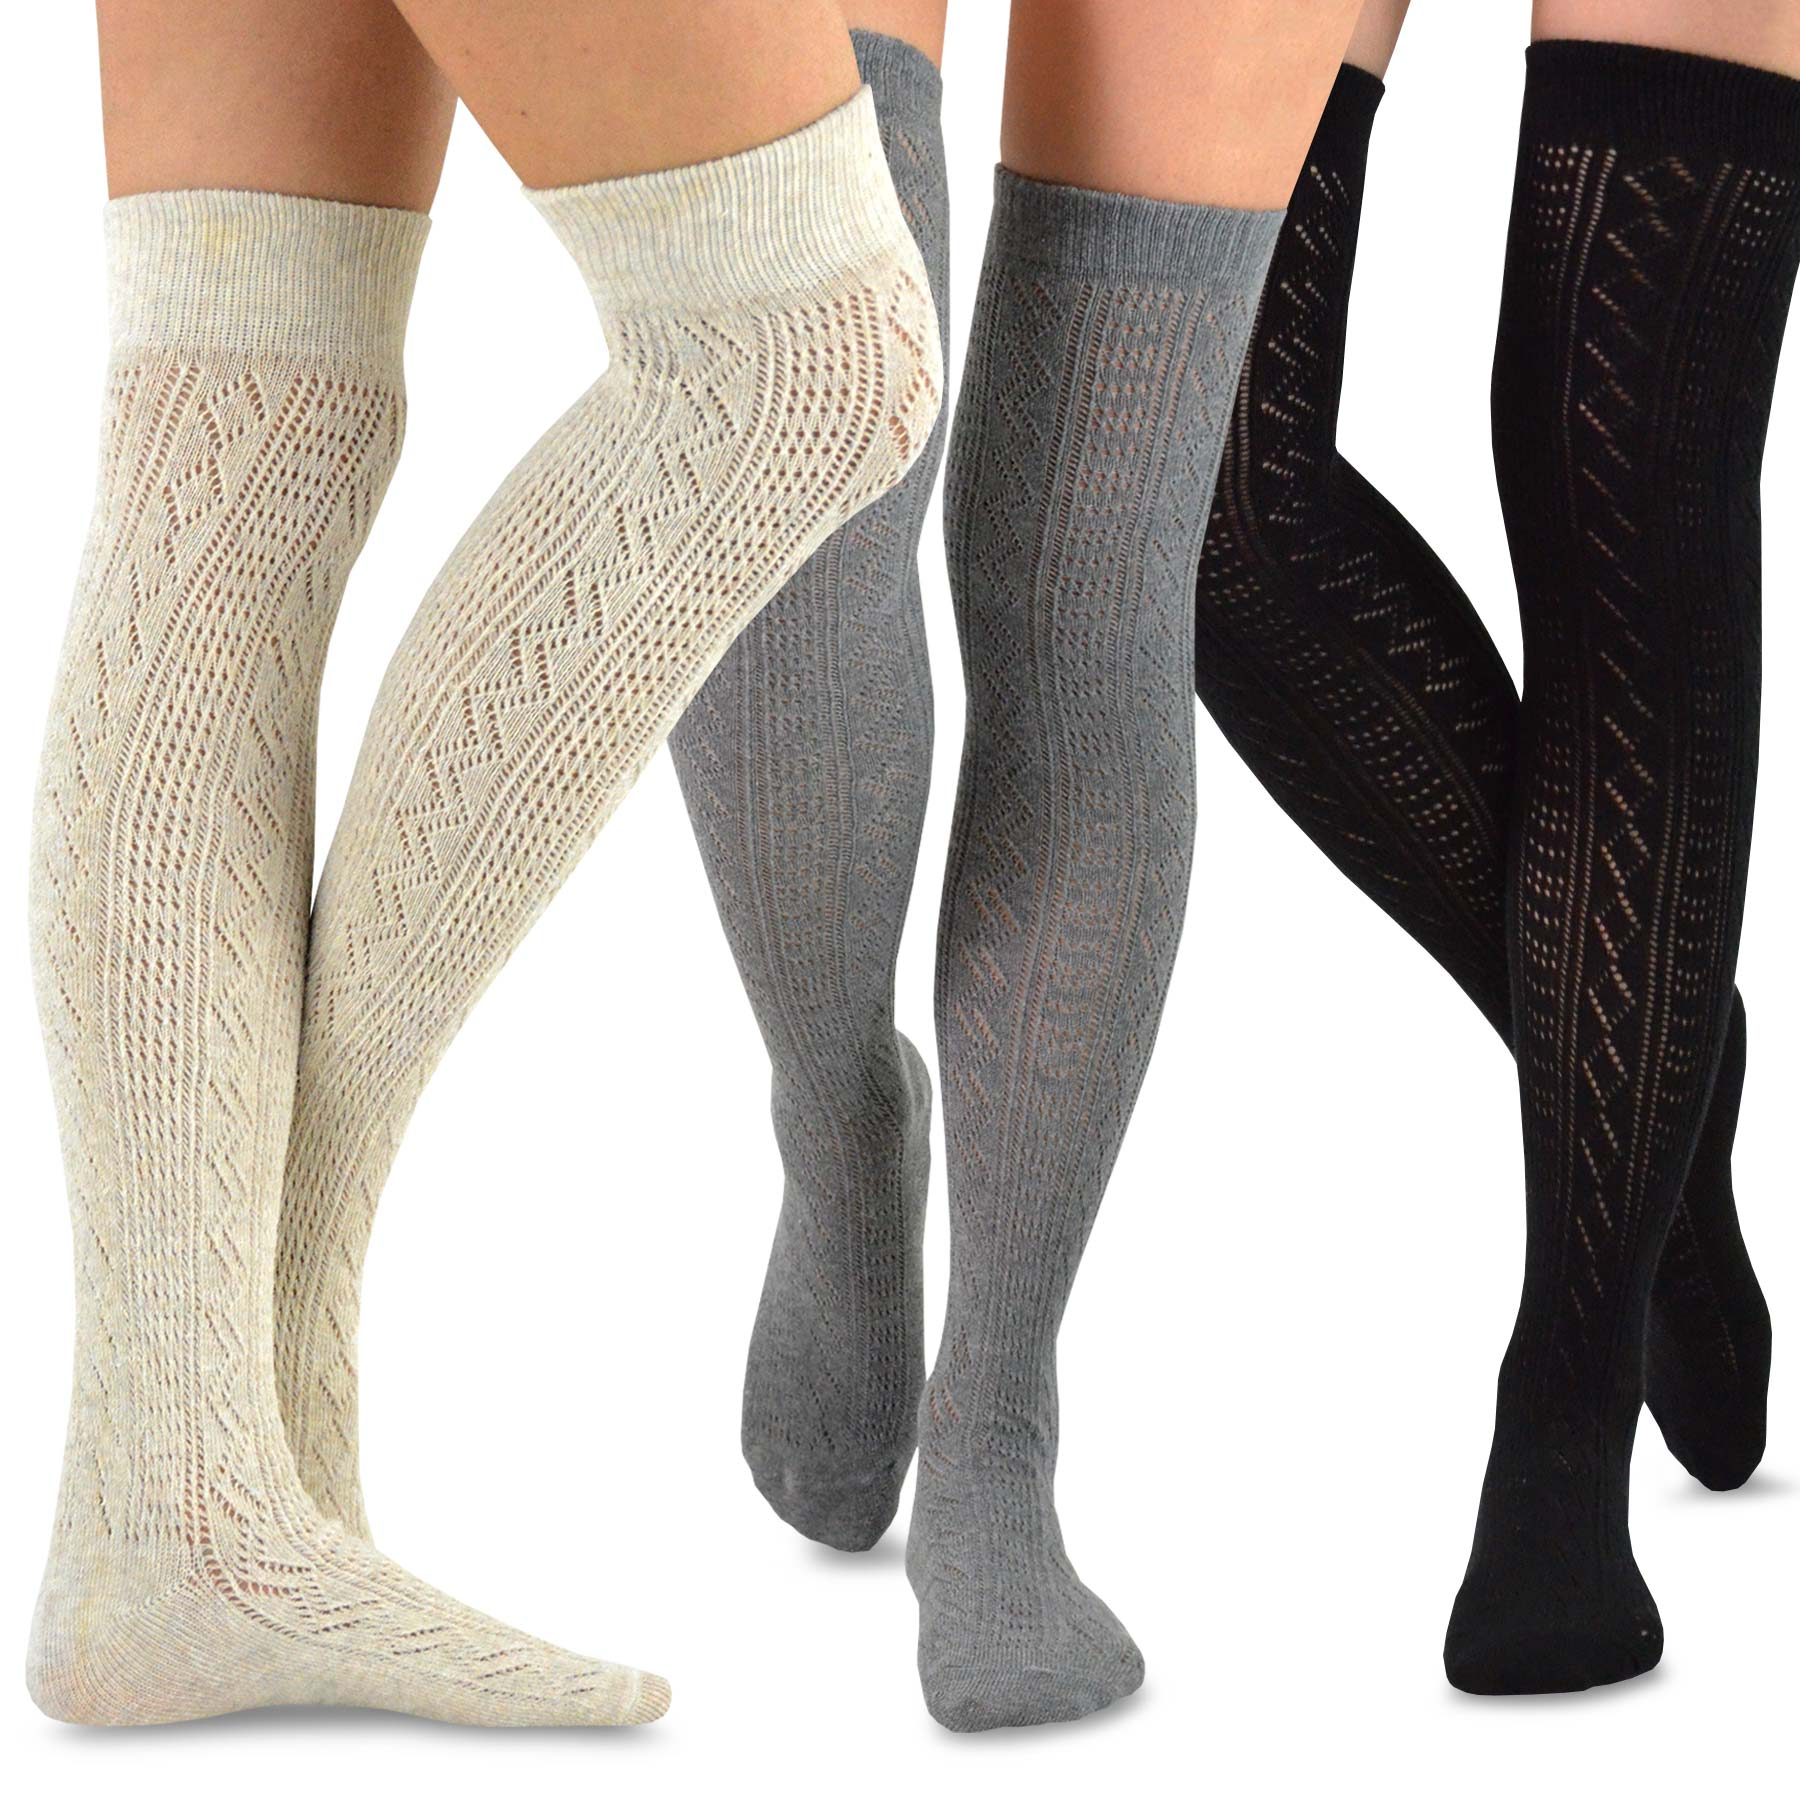 7d09a5f70a702 TeeHee Women's Fashion Over the Knee High Socks - 3 Pair Combo (Dedicated  Pattern)